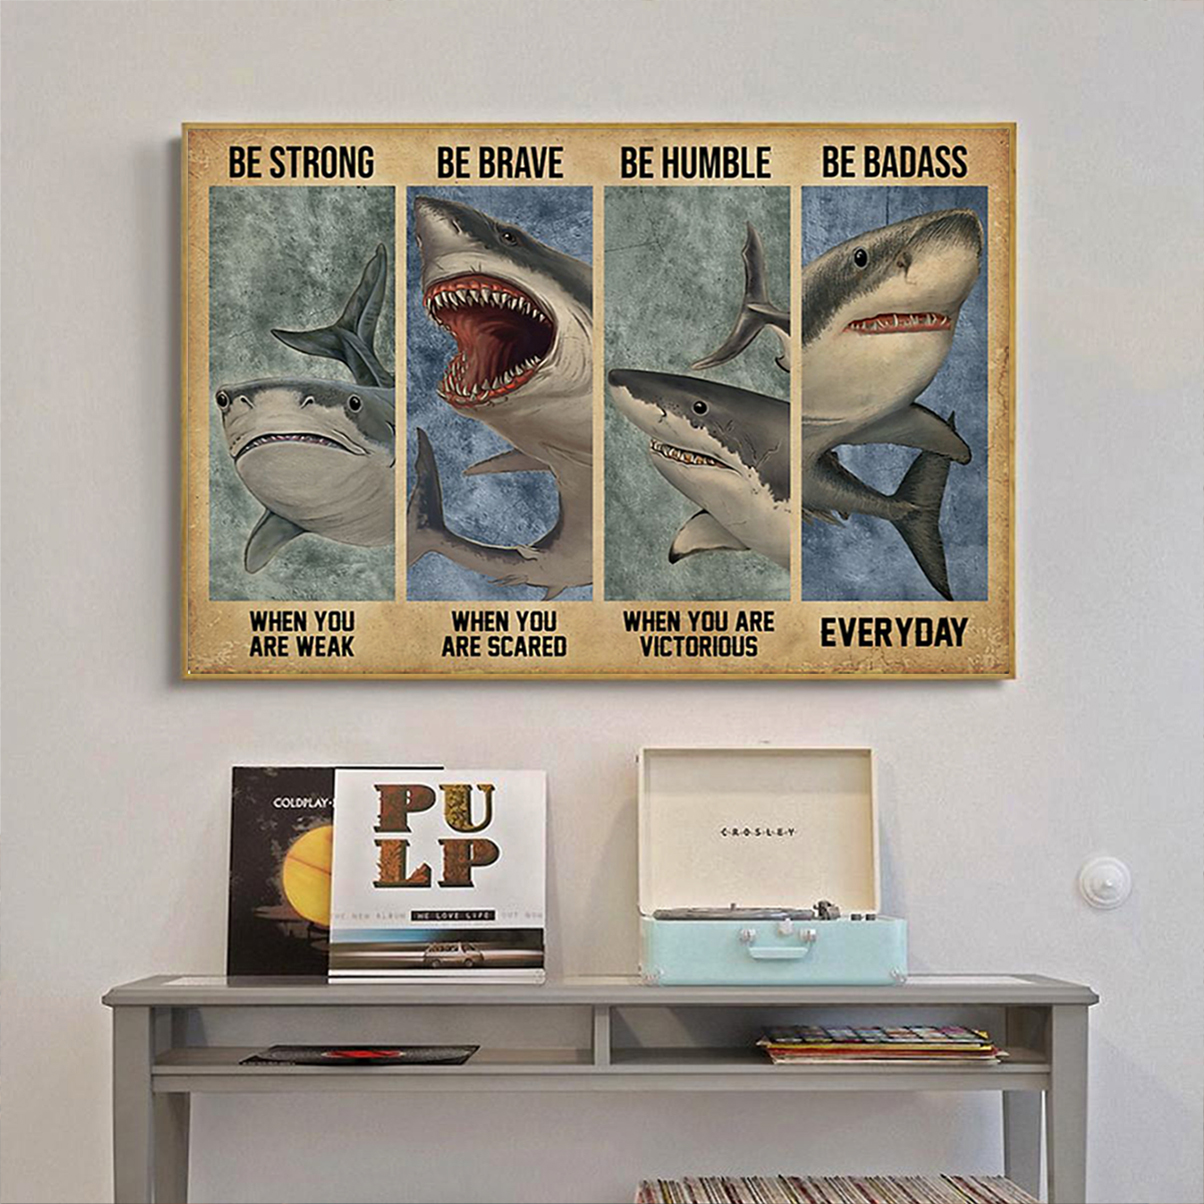 Shark be strong be brave be humble be badass poster A3